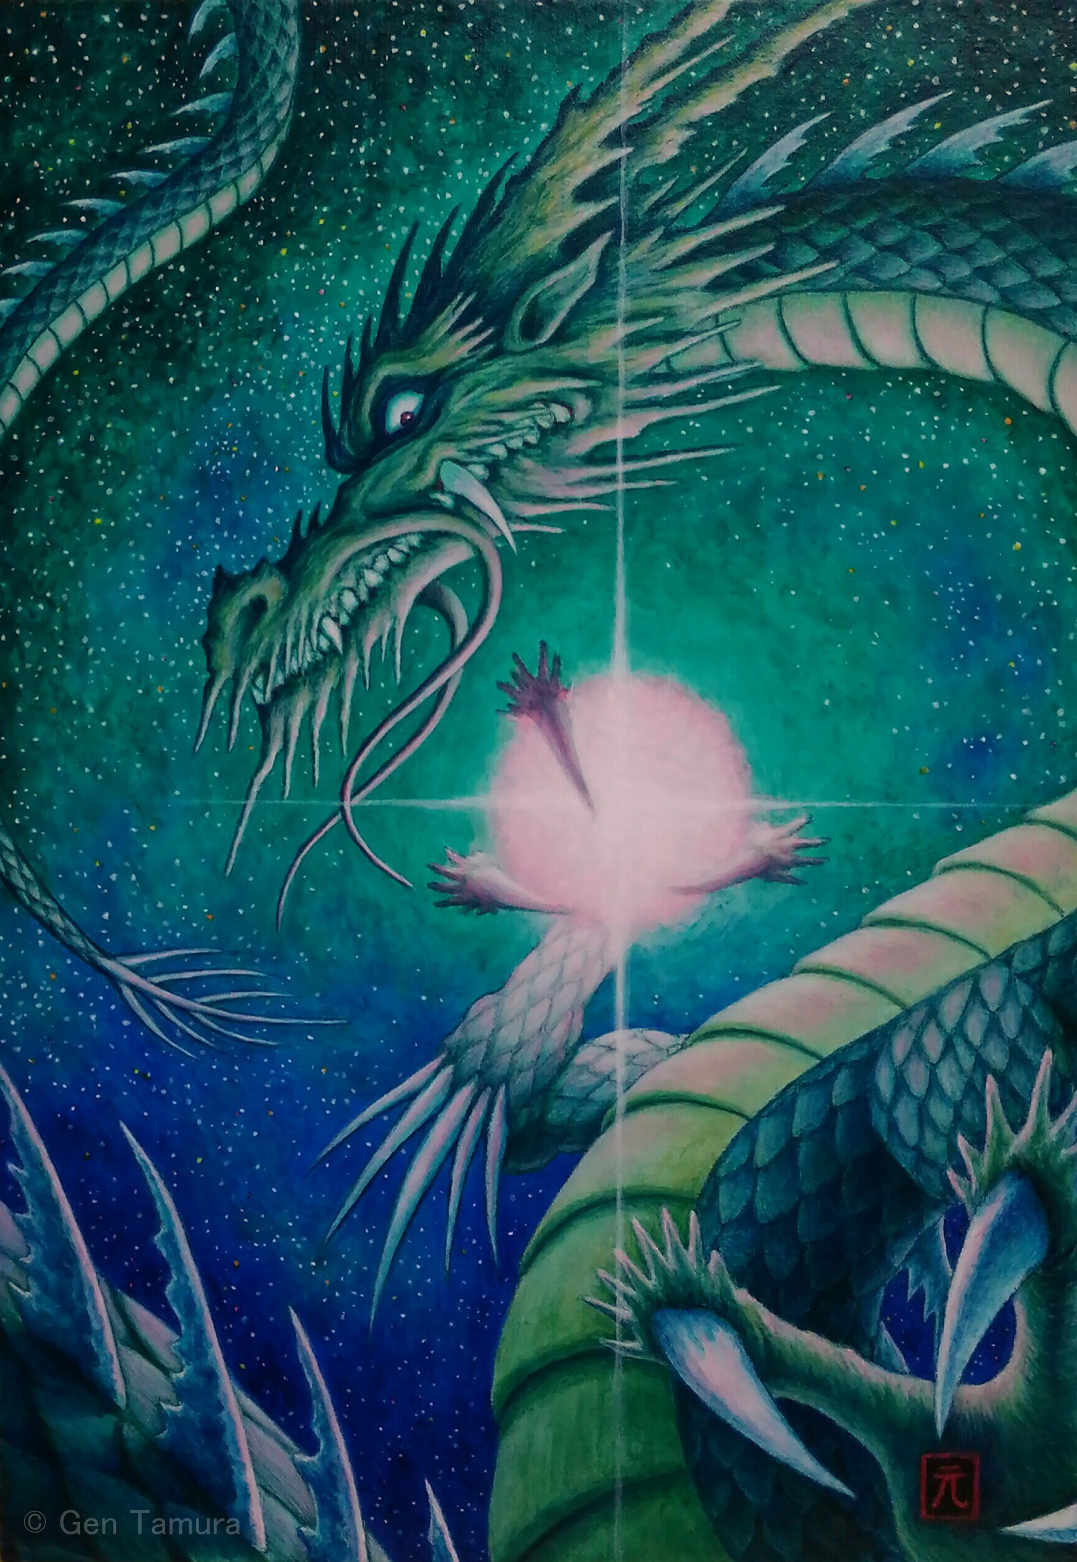 An acrylic painting of the Asian dragon